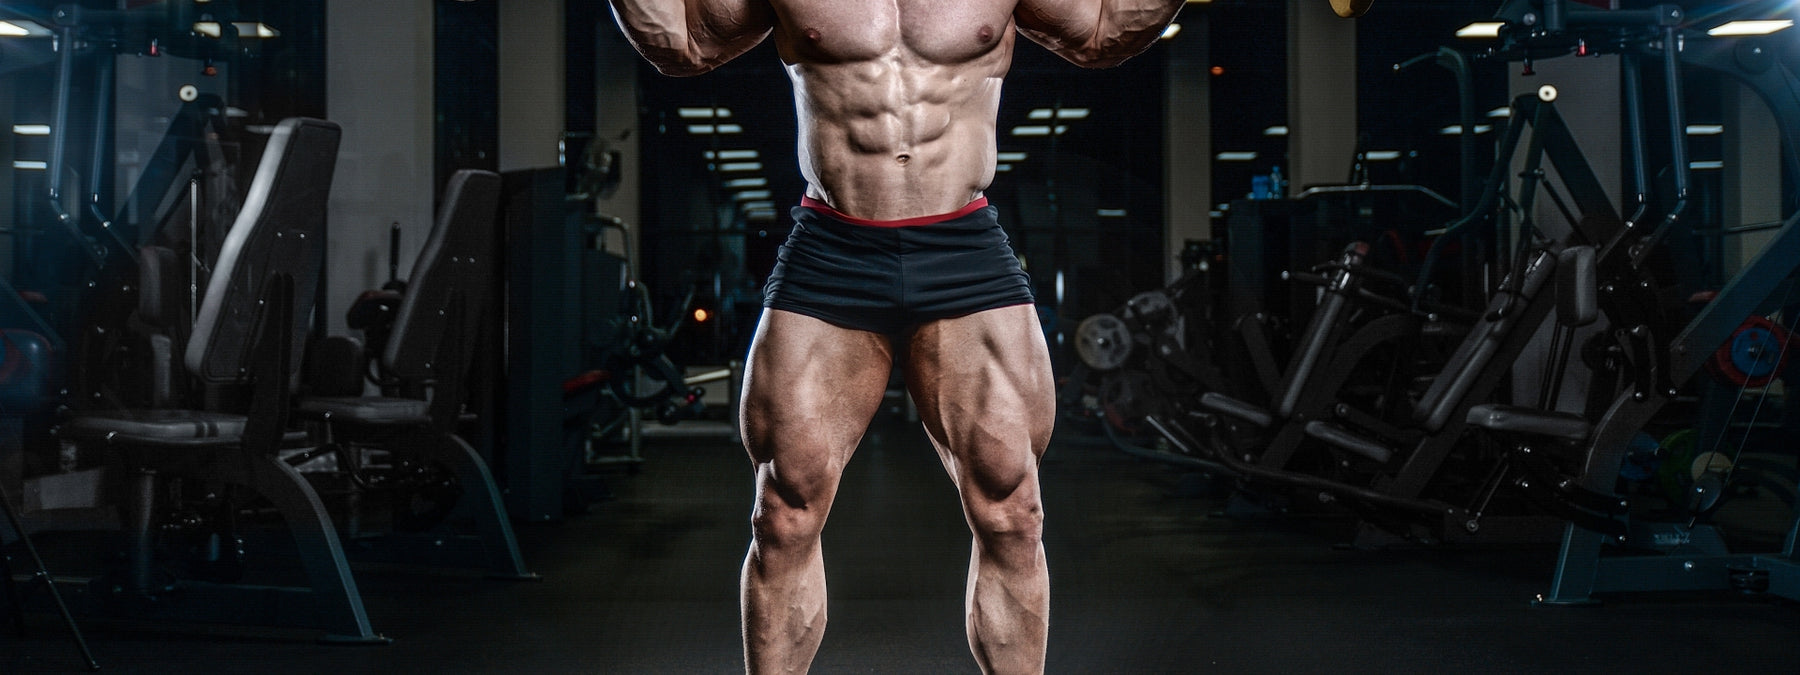 4 Tips to Building Massive Legs - With Bonus Workout